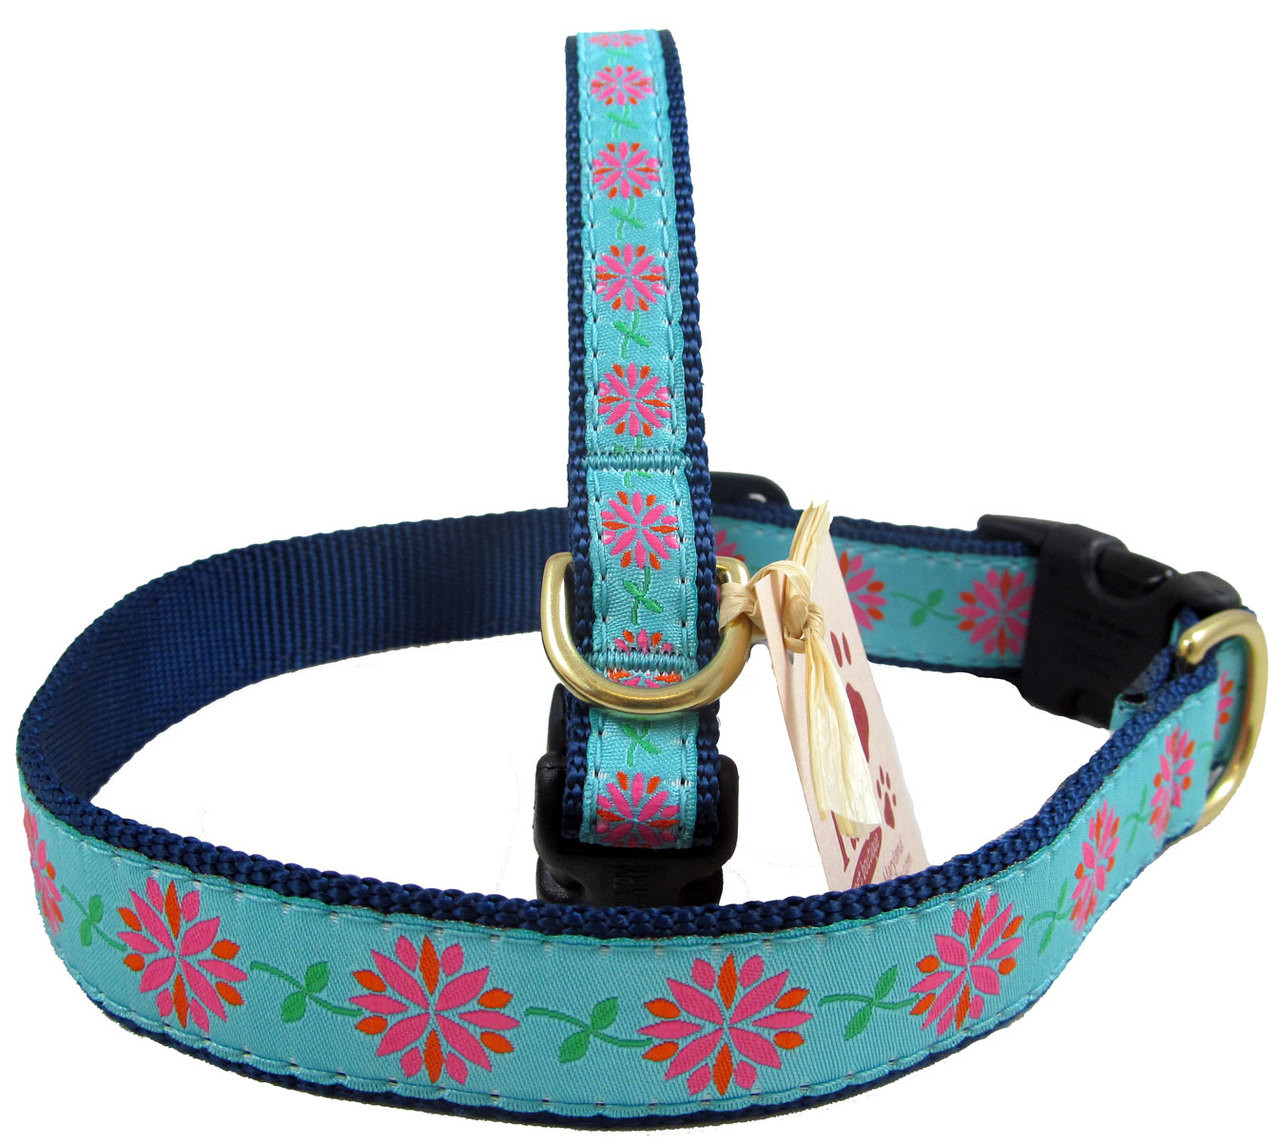 Dahlia Pink Floral Dog Collars At Pawspetboutique